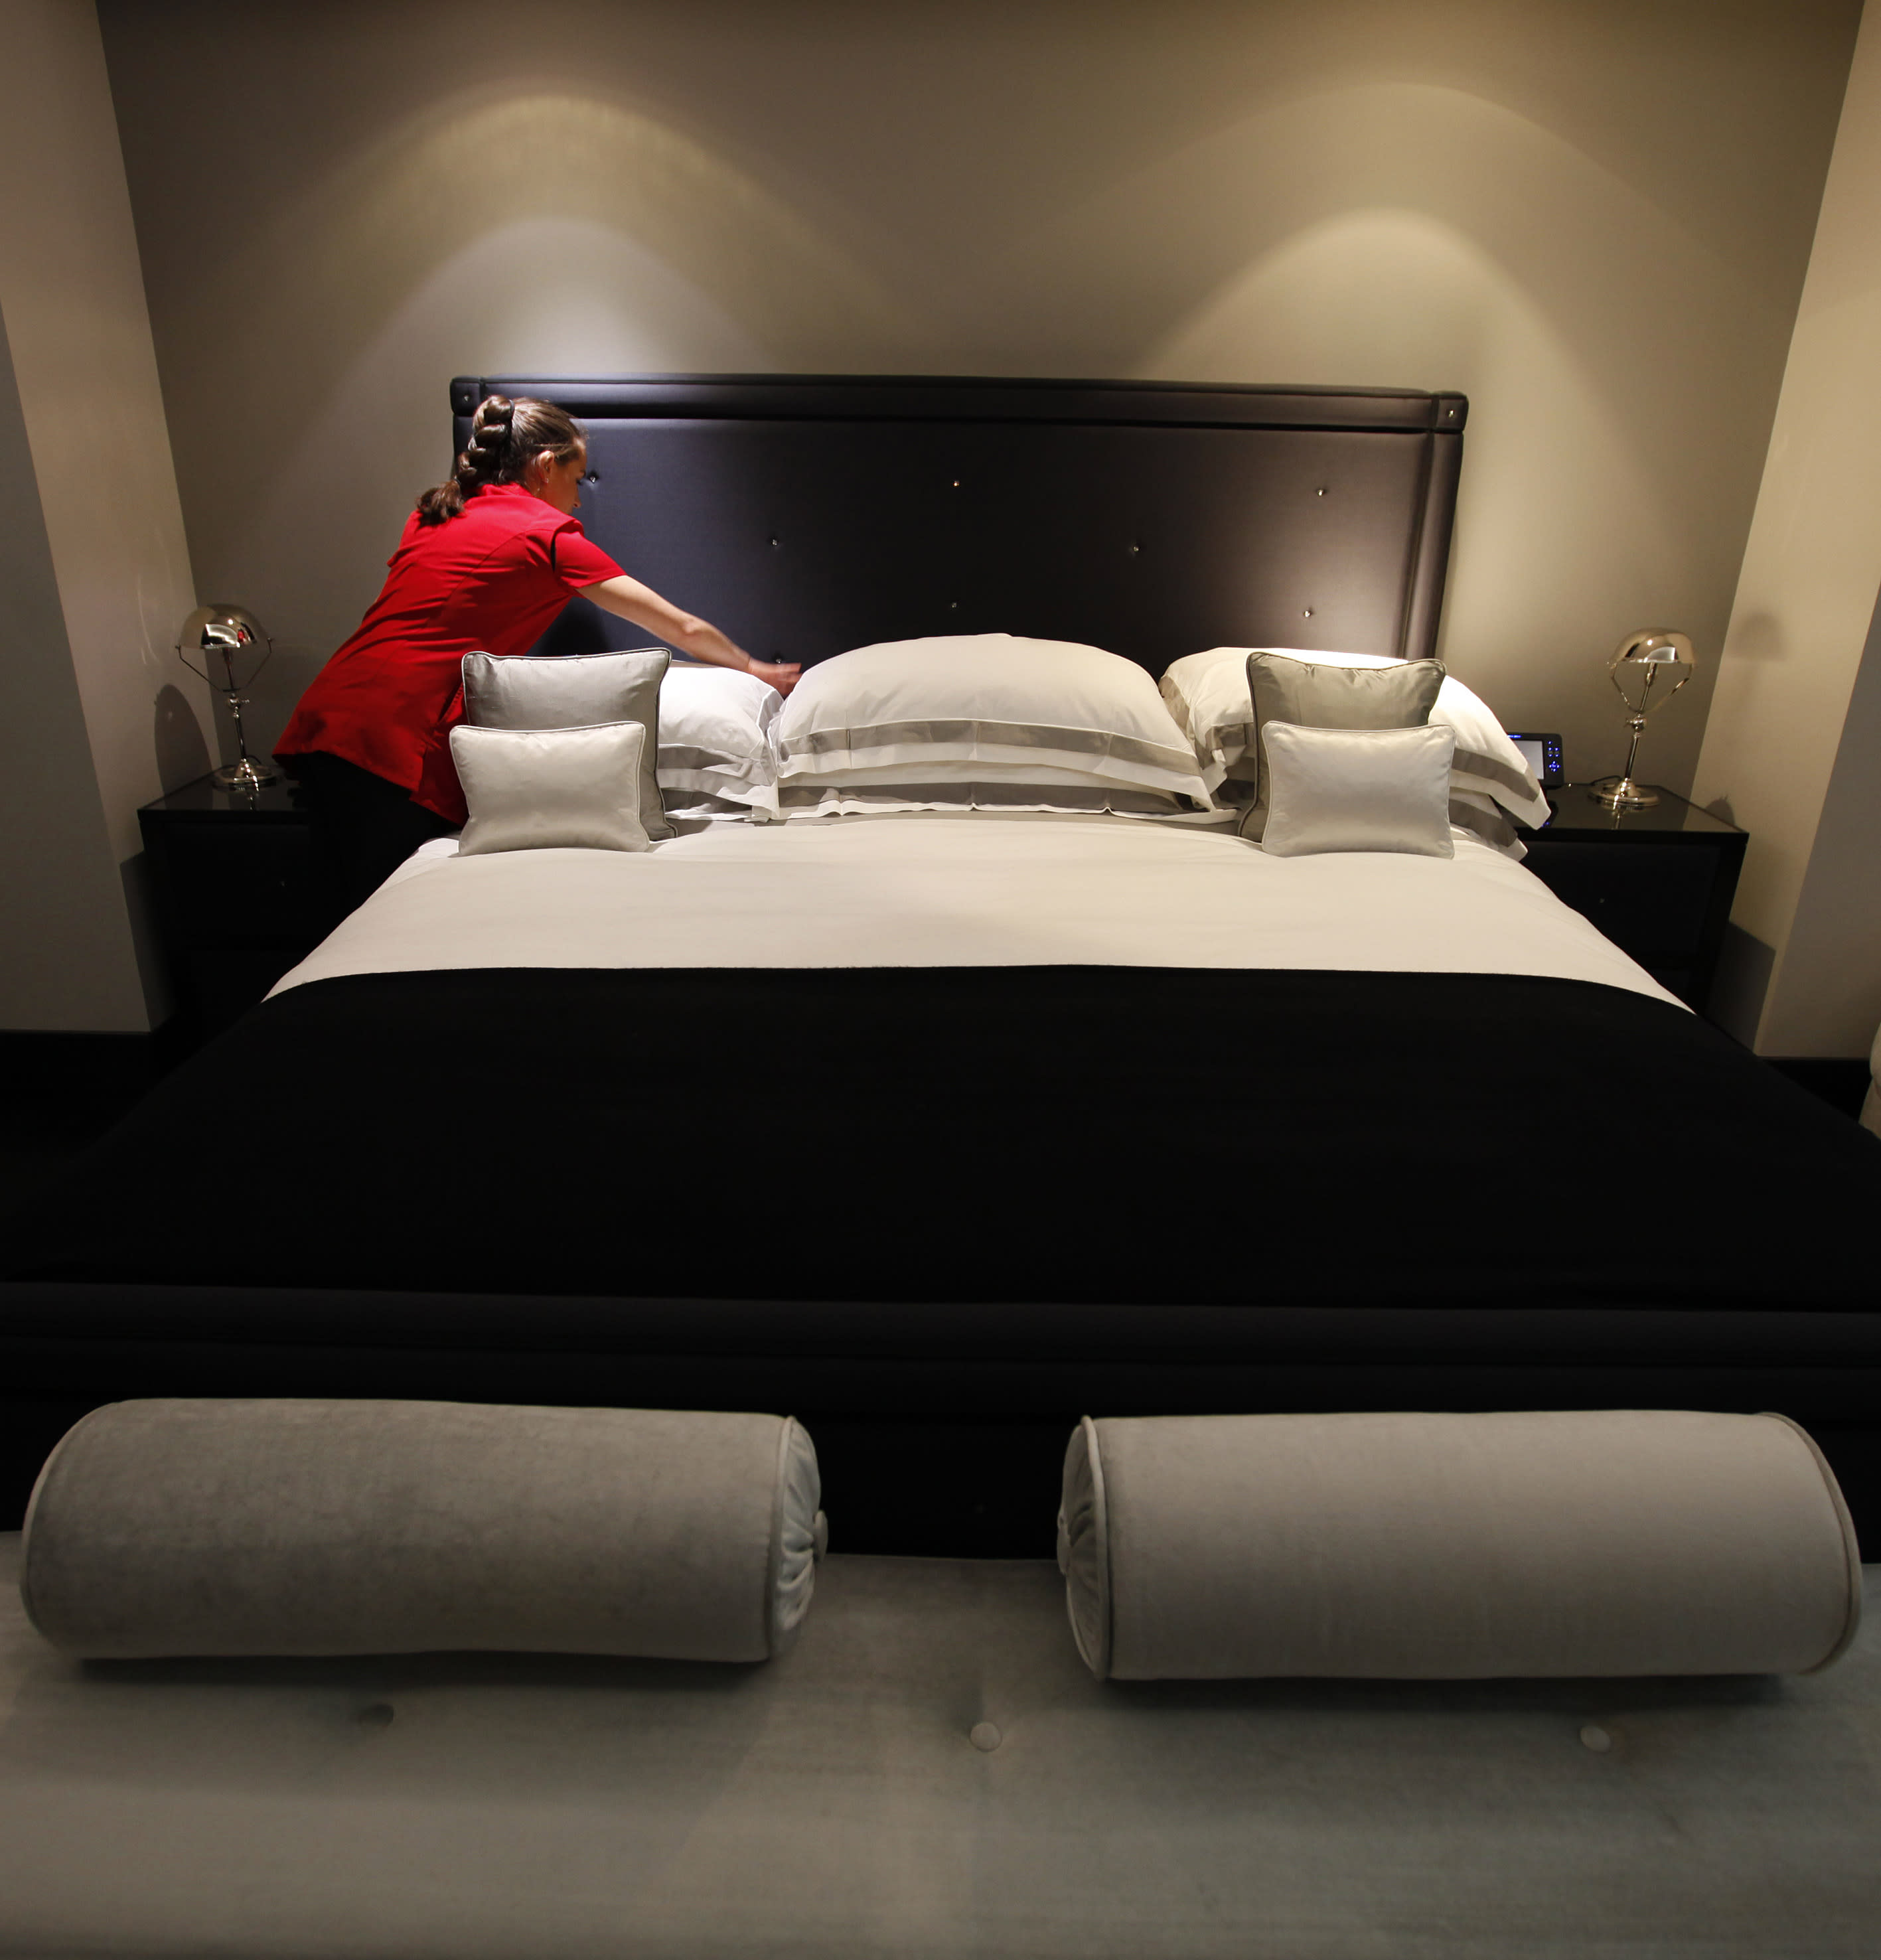 1 Bedroom Apartments In London: Money Talks In Search For London Olympic Hotels